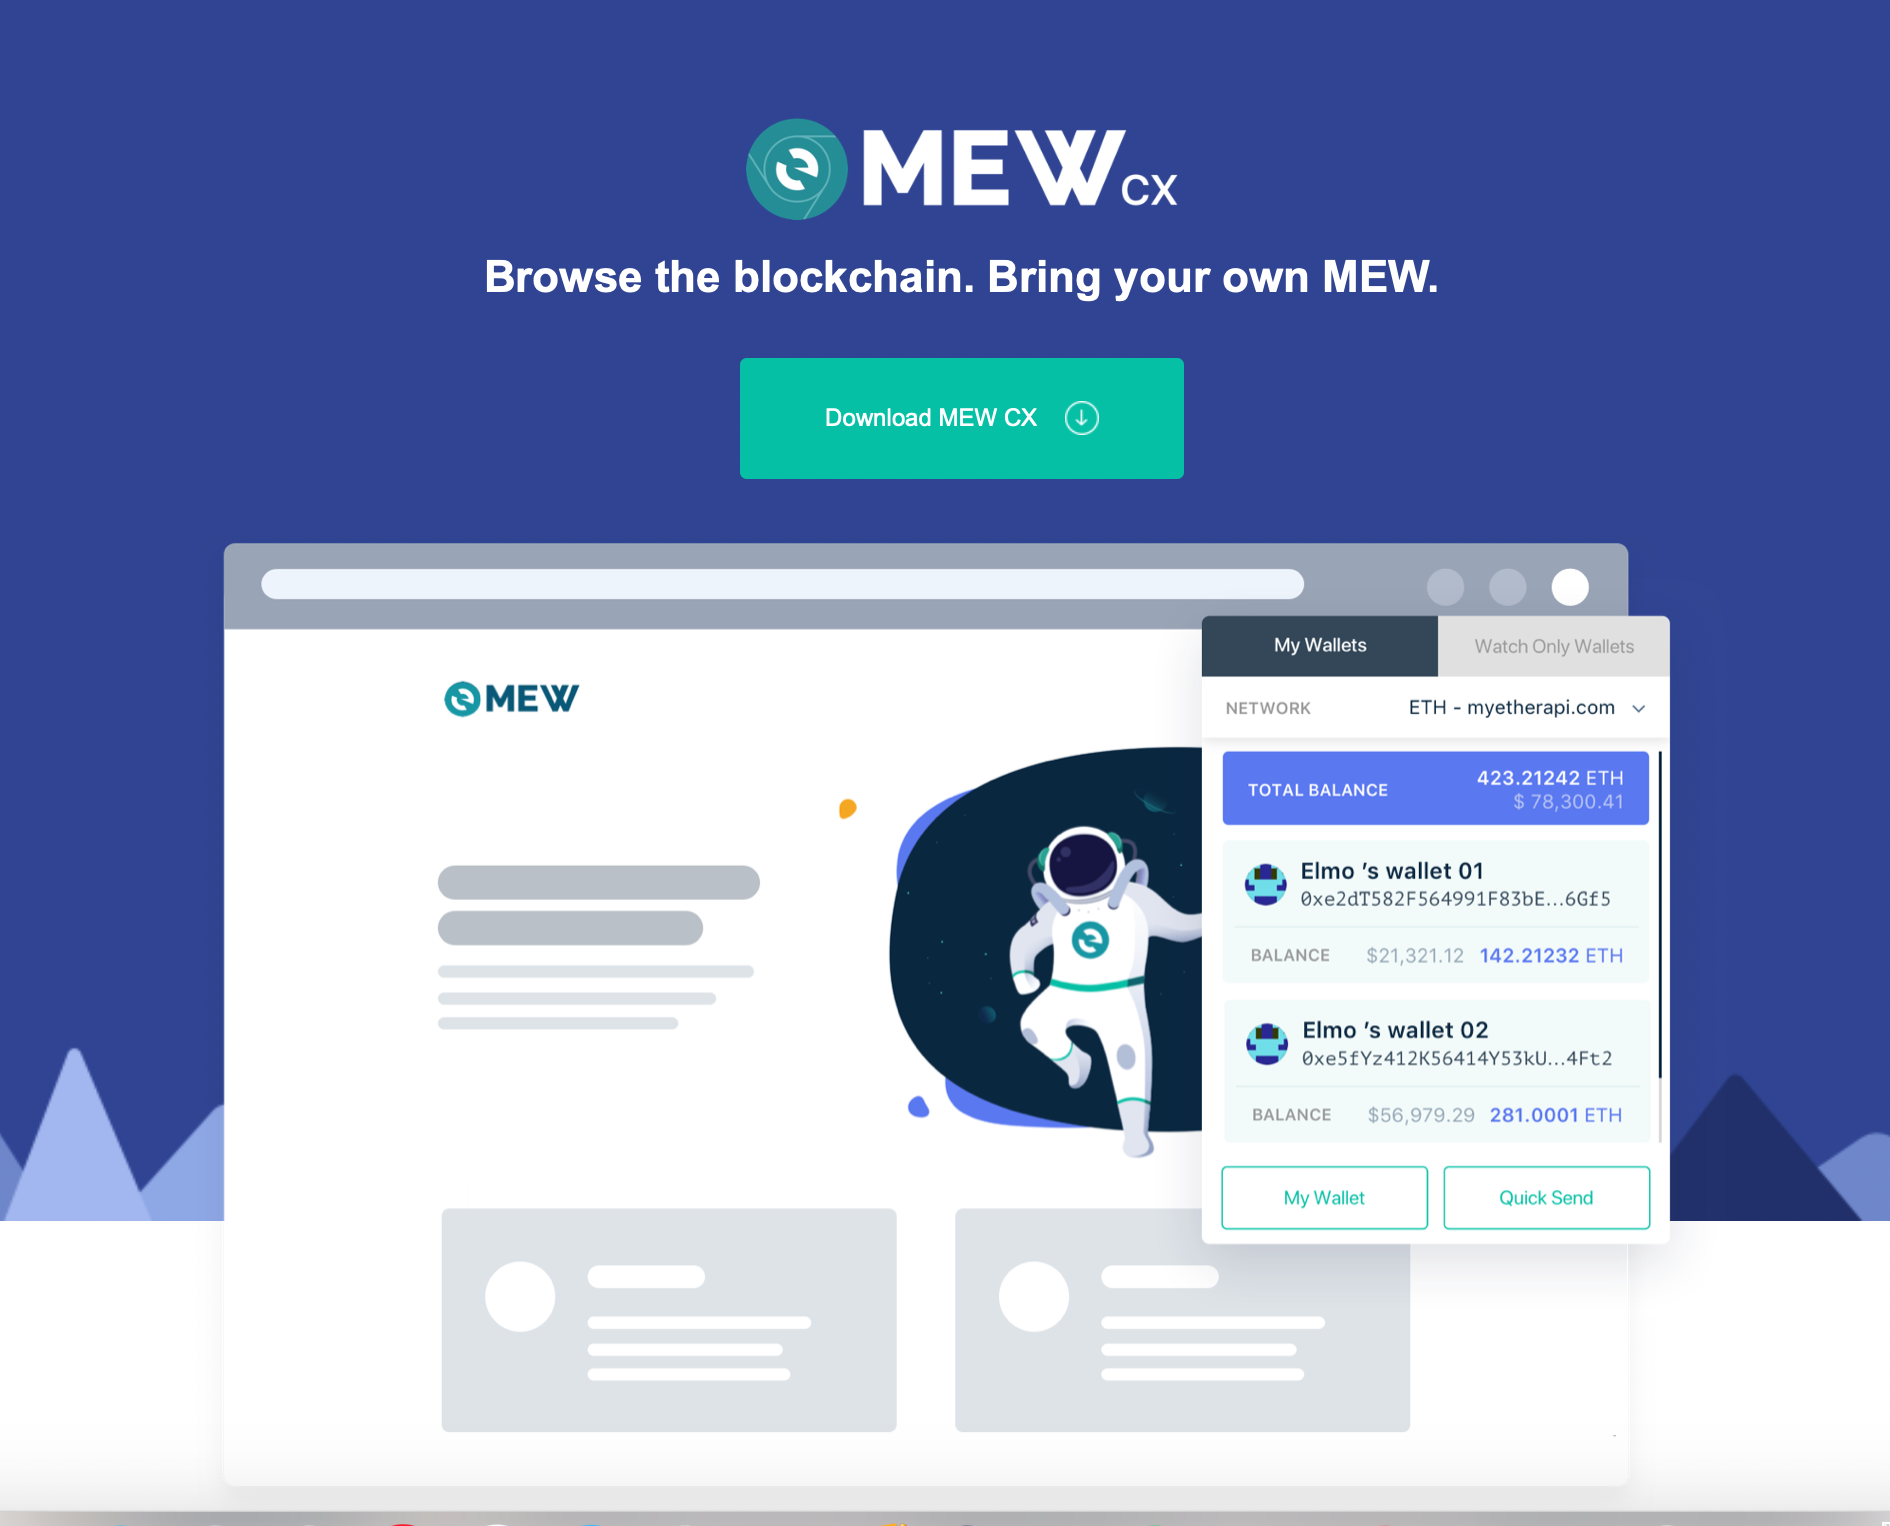 MEW CX home page